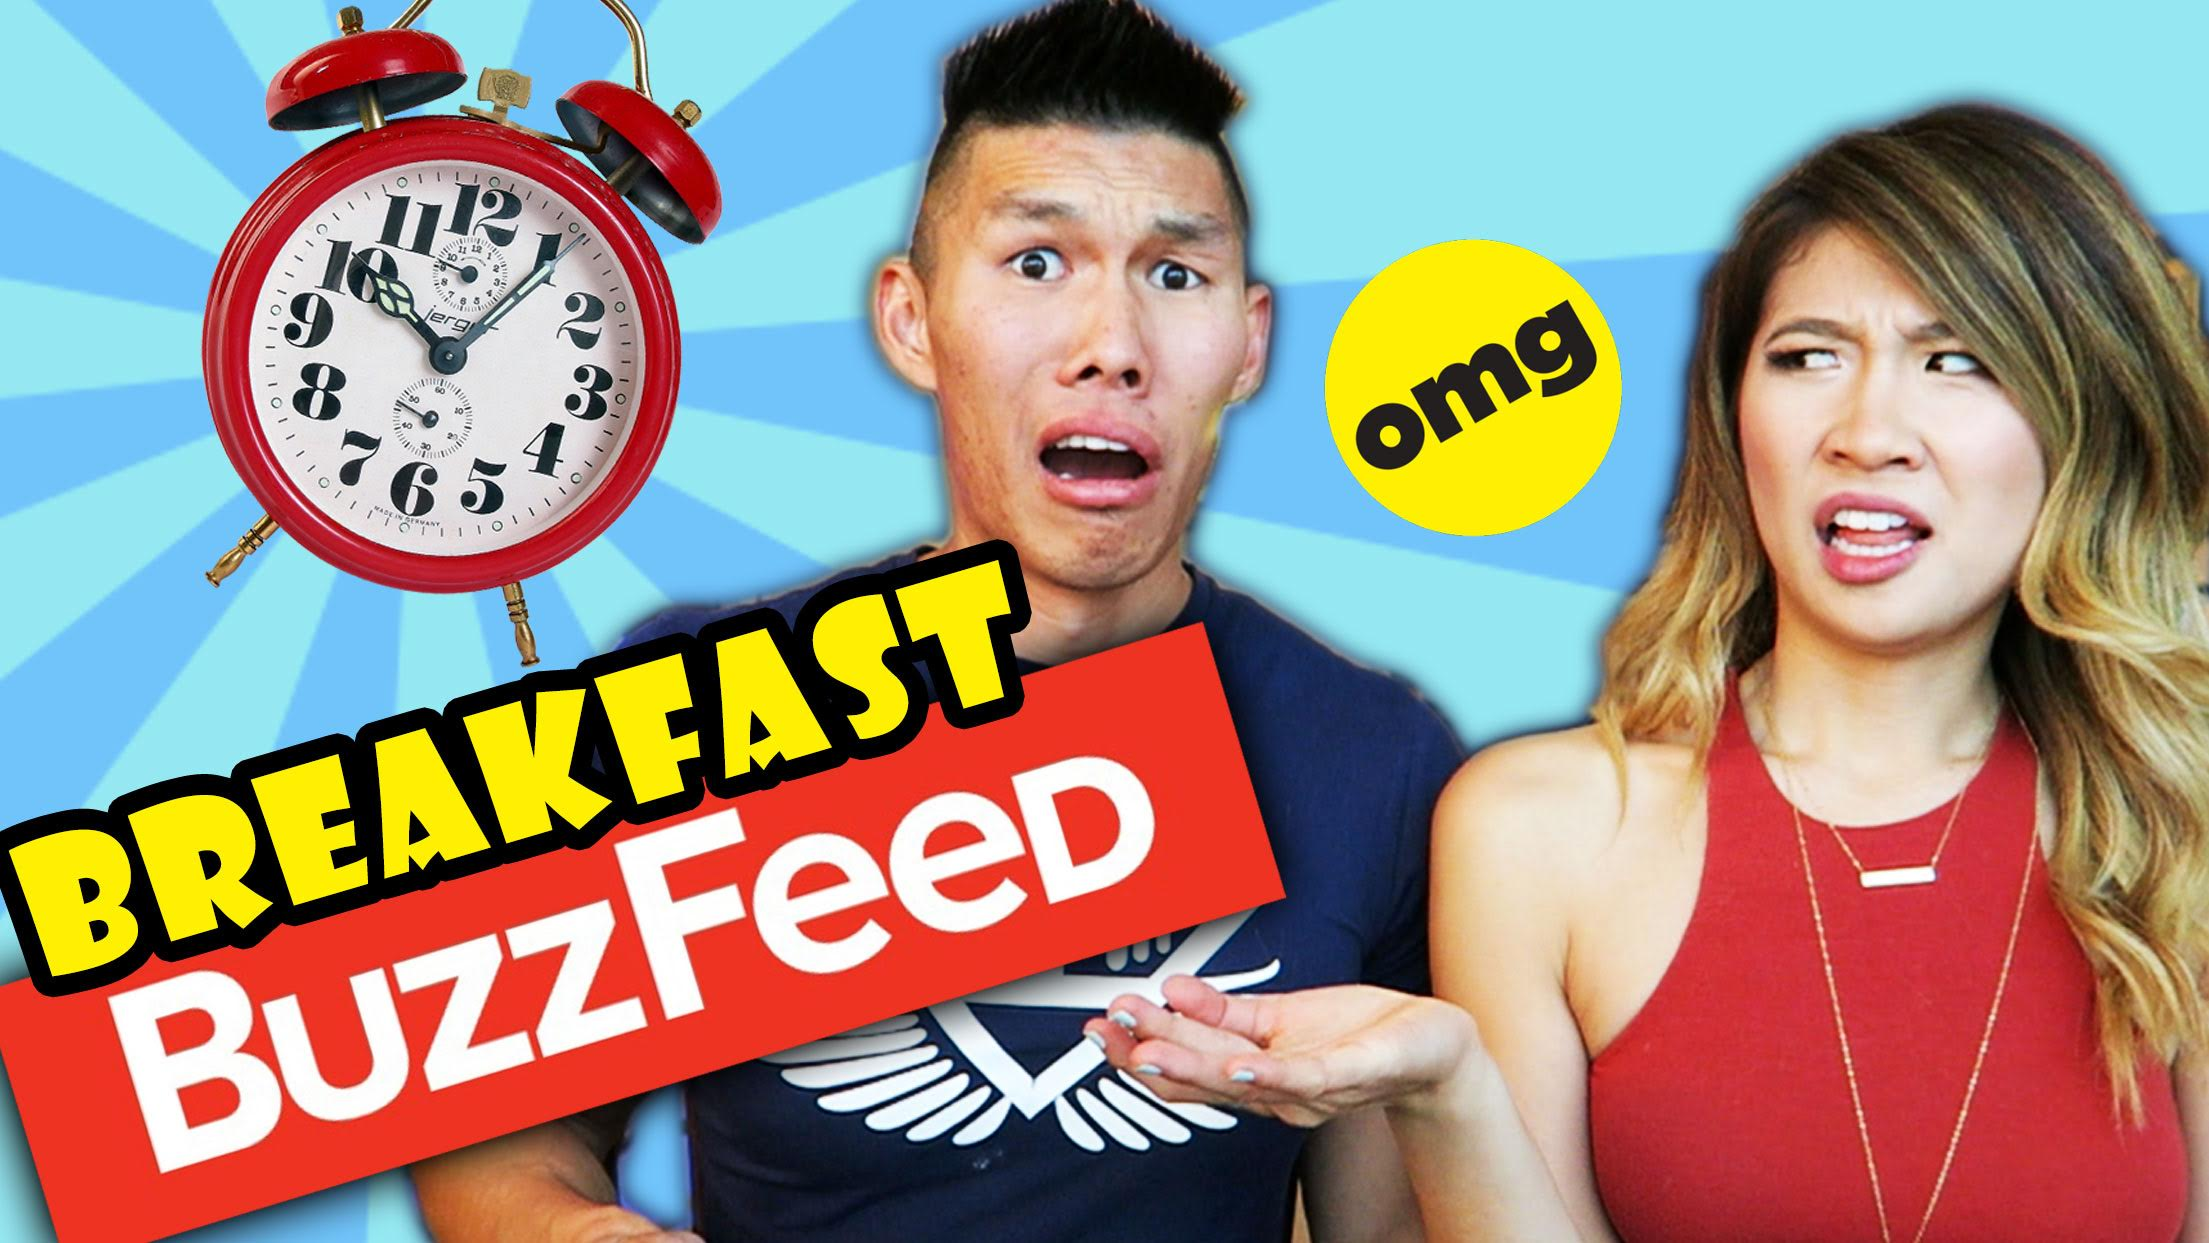 BUZZFEED BREAKFAST DIY FOOD RECIPE TASTE TEST